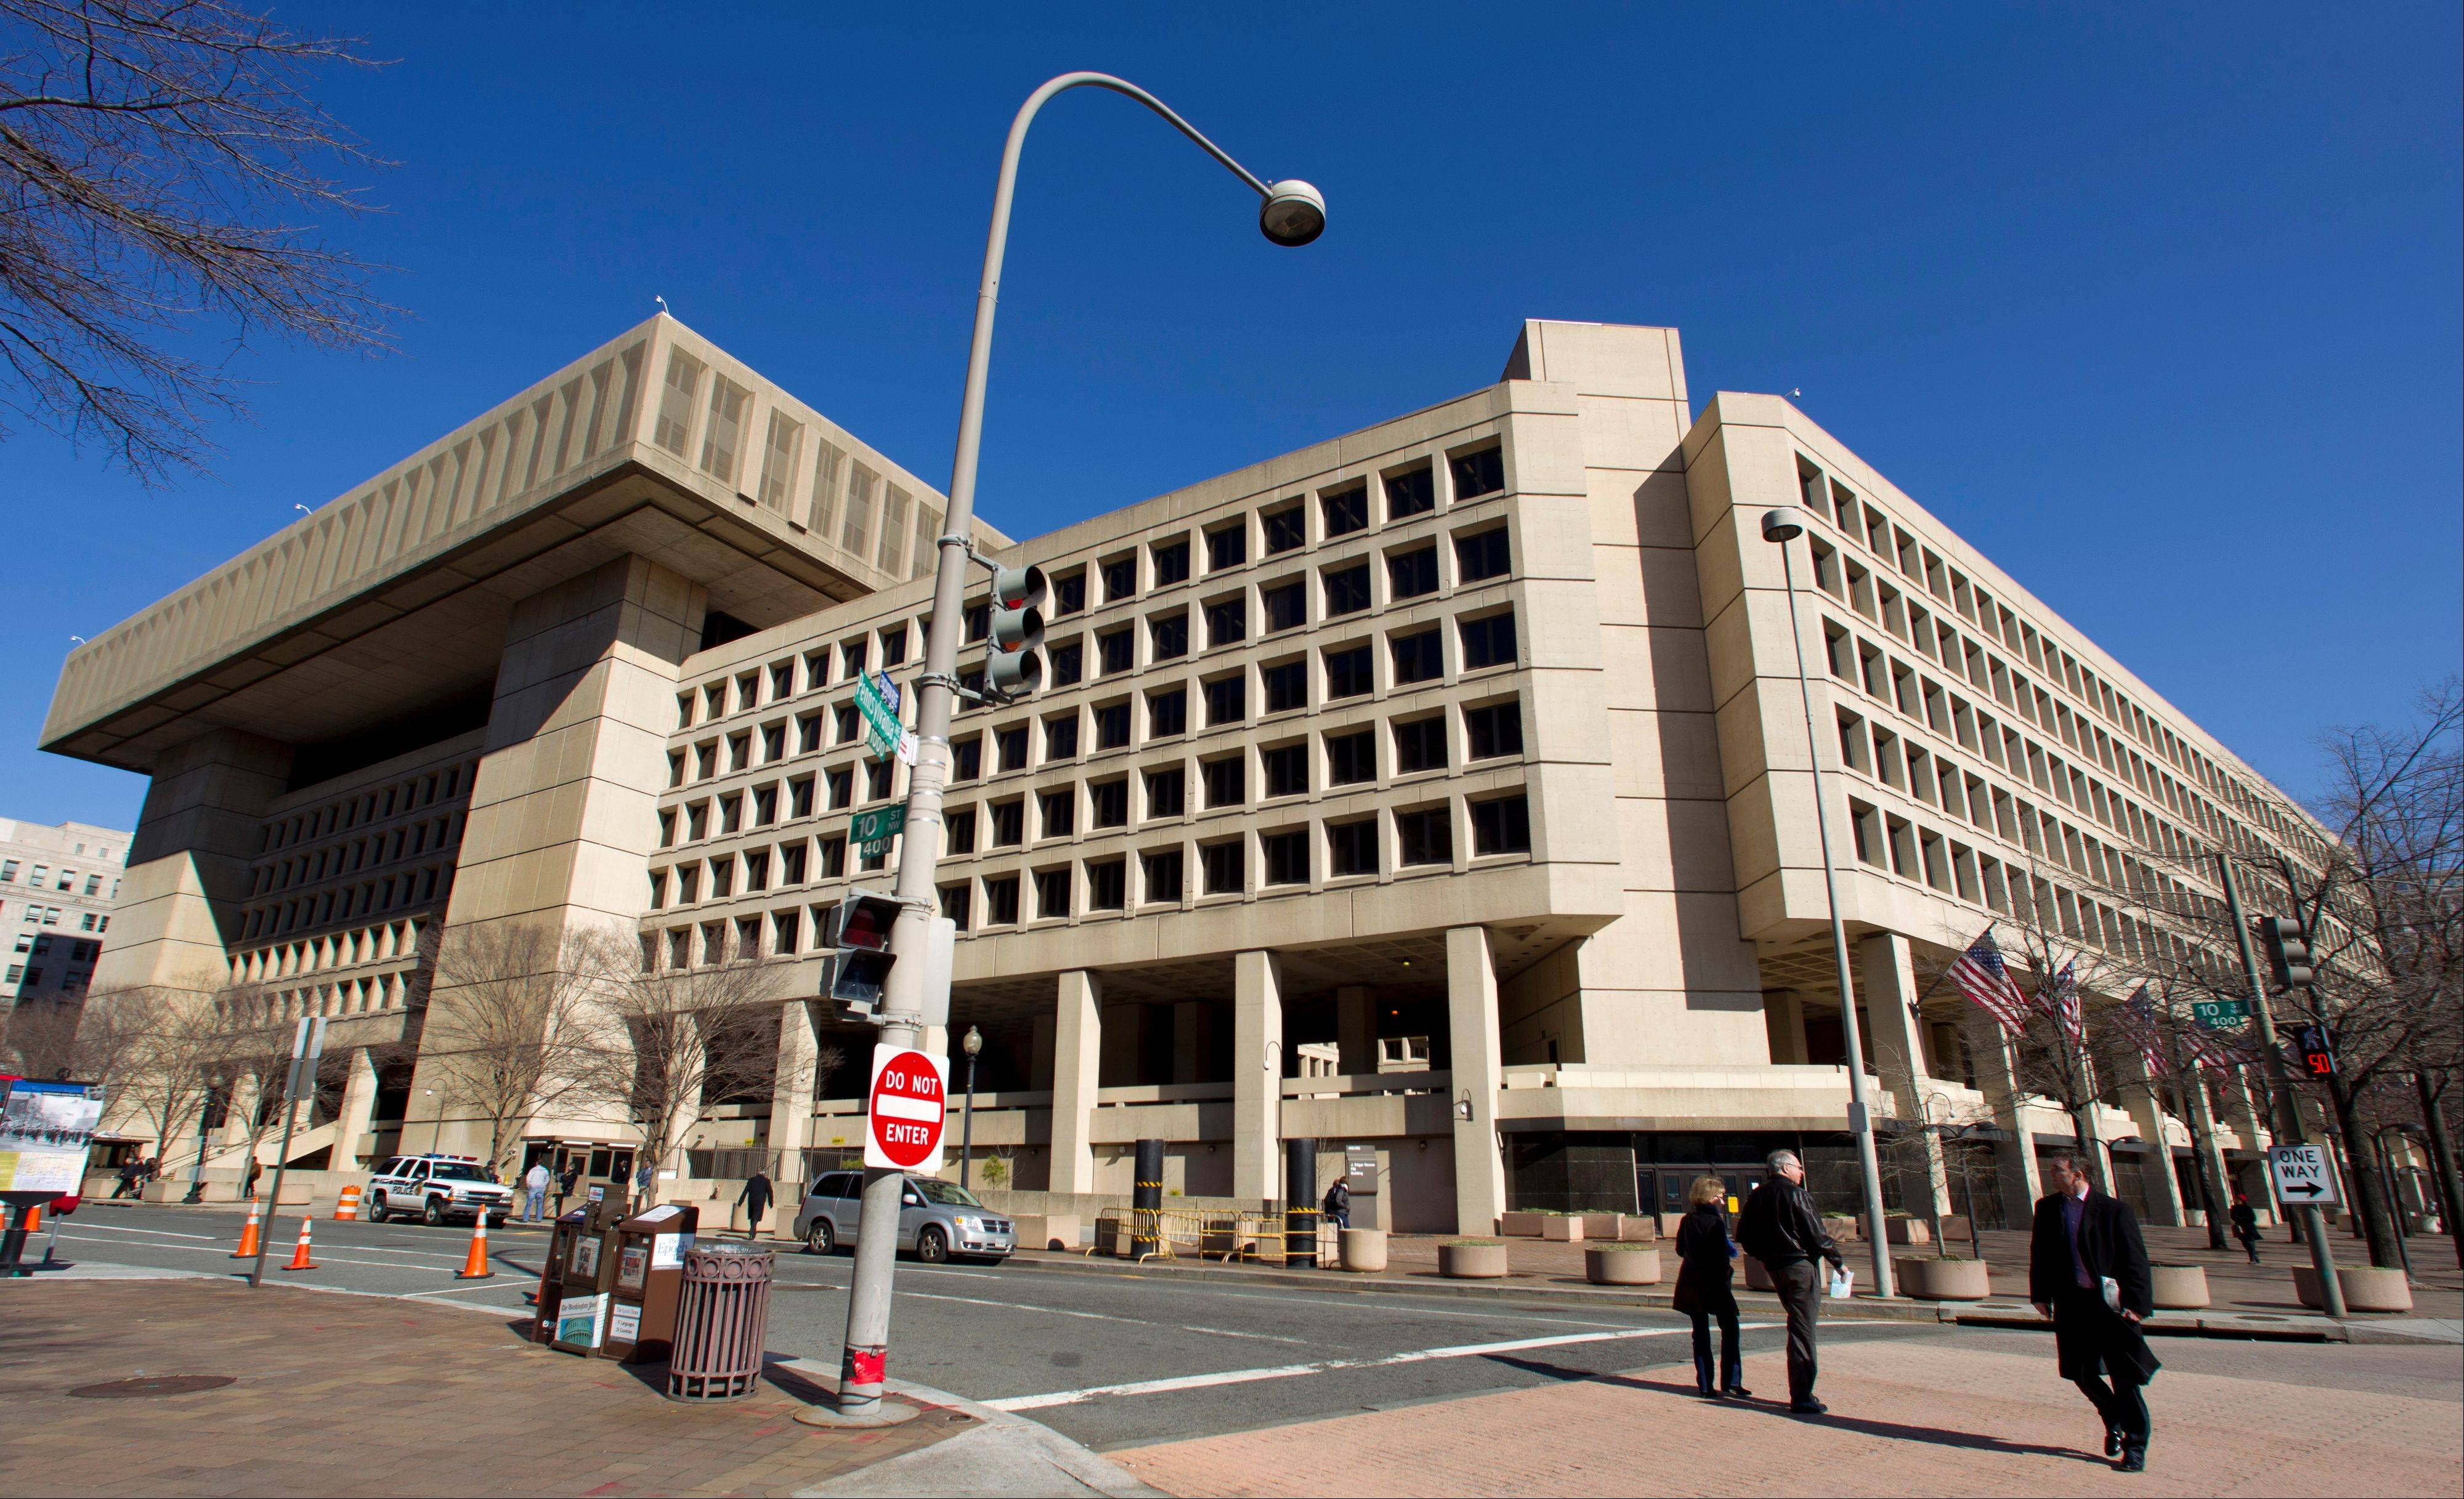 Just six blocks from the White House, the FBI�s hulking headquarters overlooking Pennsylvania Avenue has long been the government building everyone loves to hate.